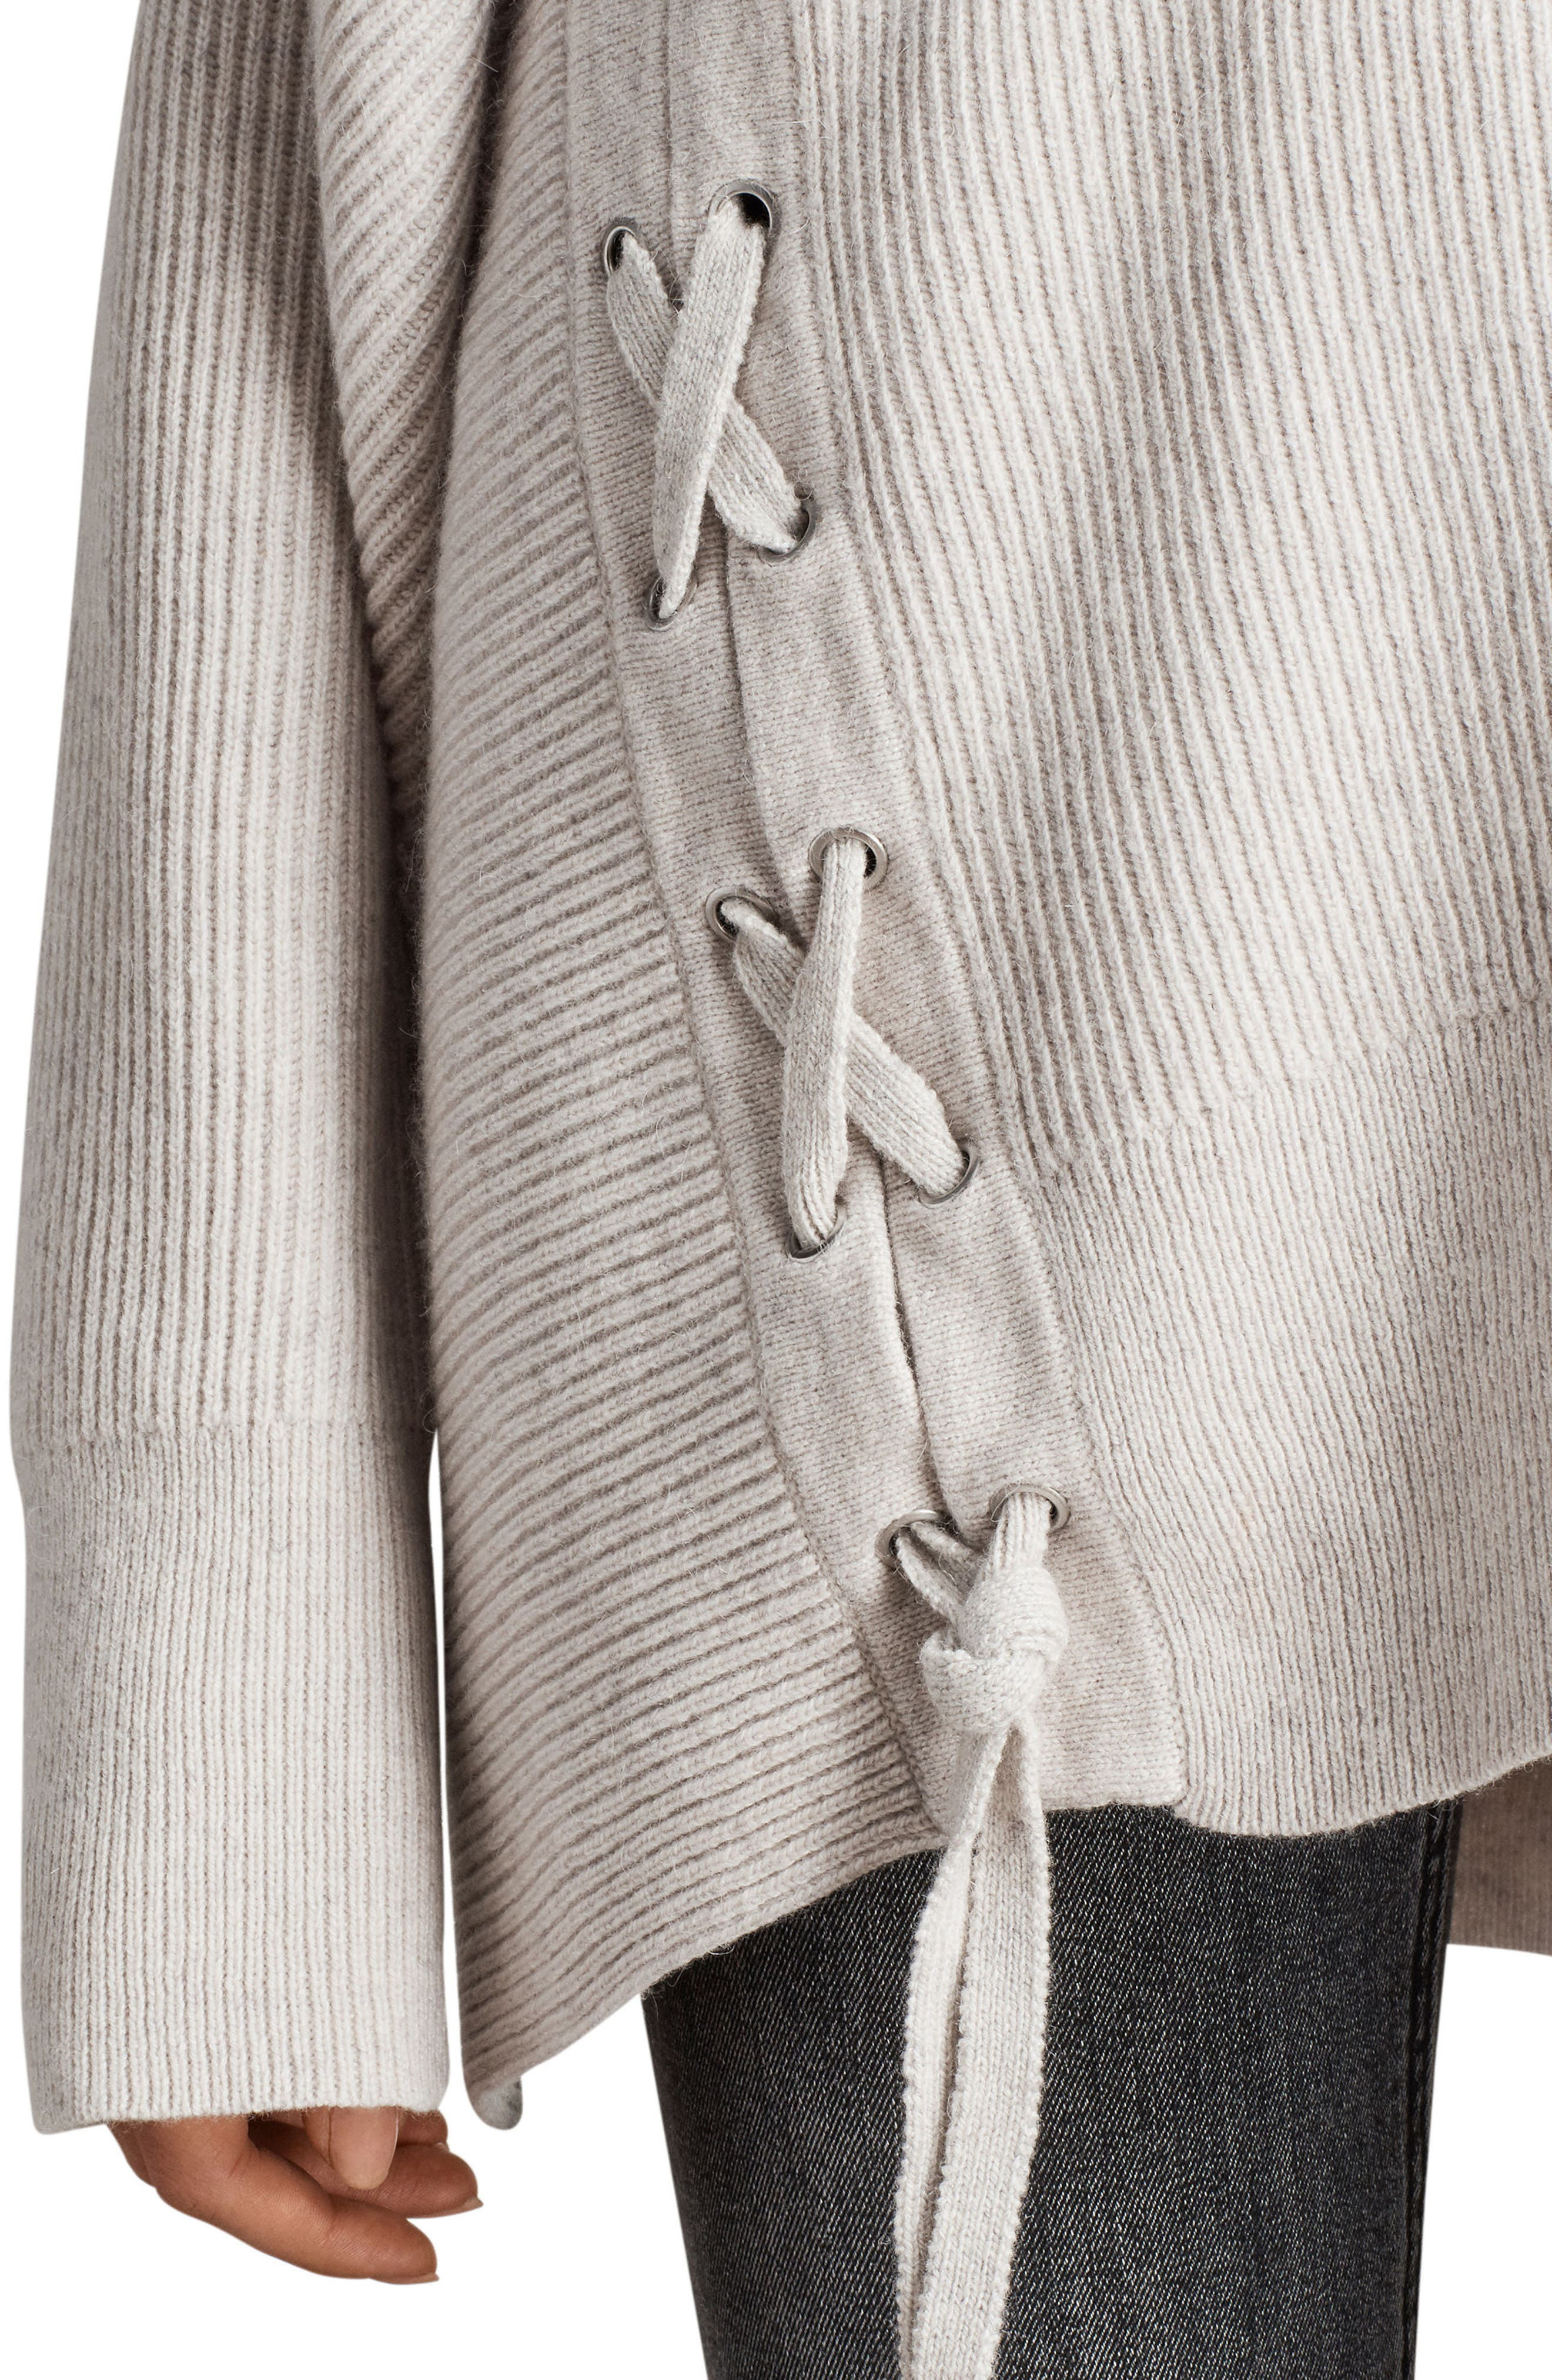 Able Laced Sweater,                             Alternate thumbnail 4, color,                             121